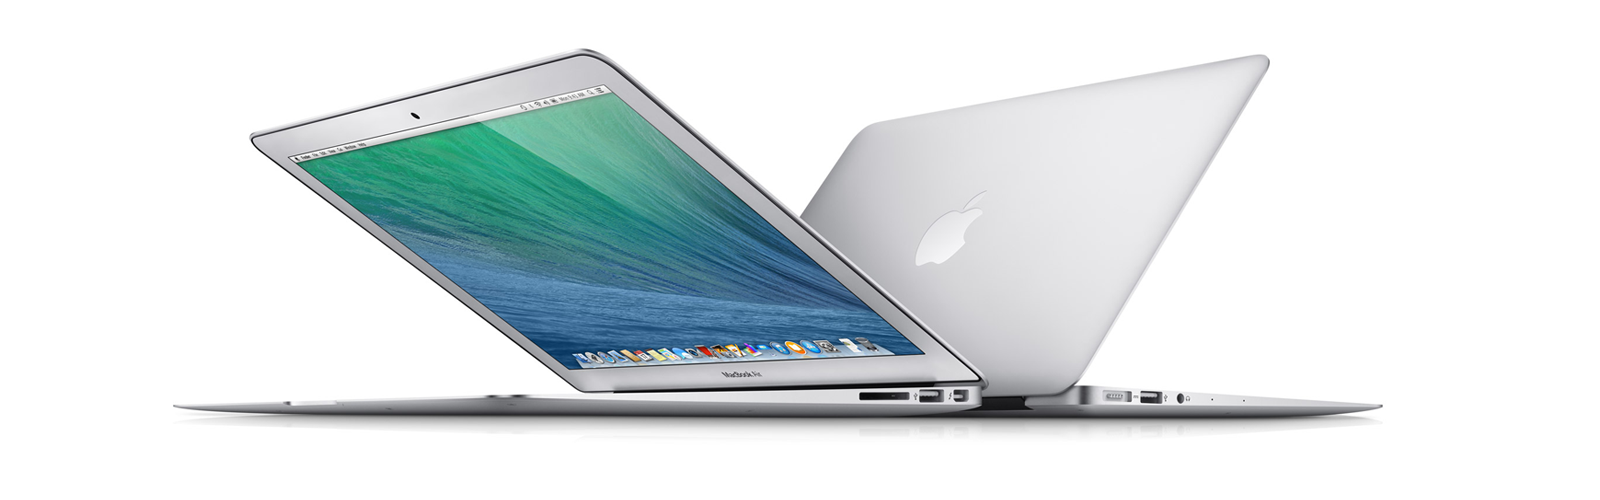 Ремонт MacBook air в Туле